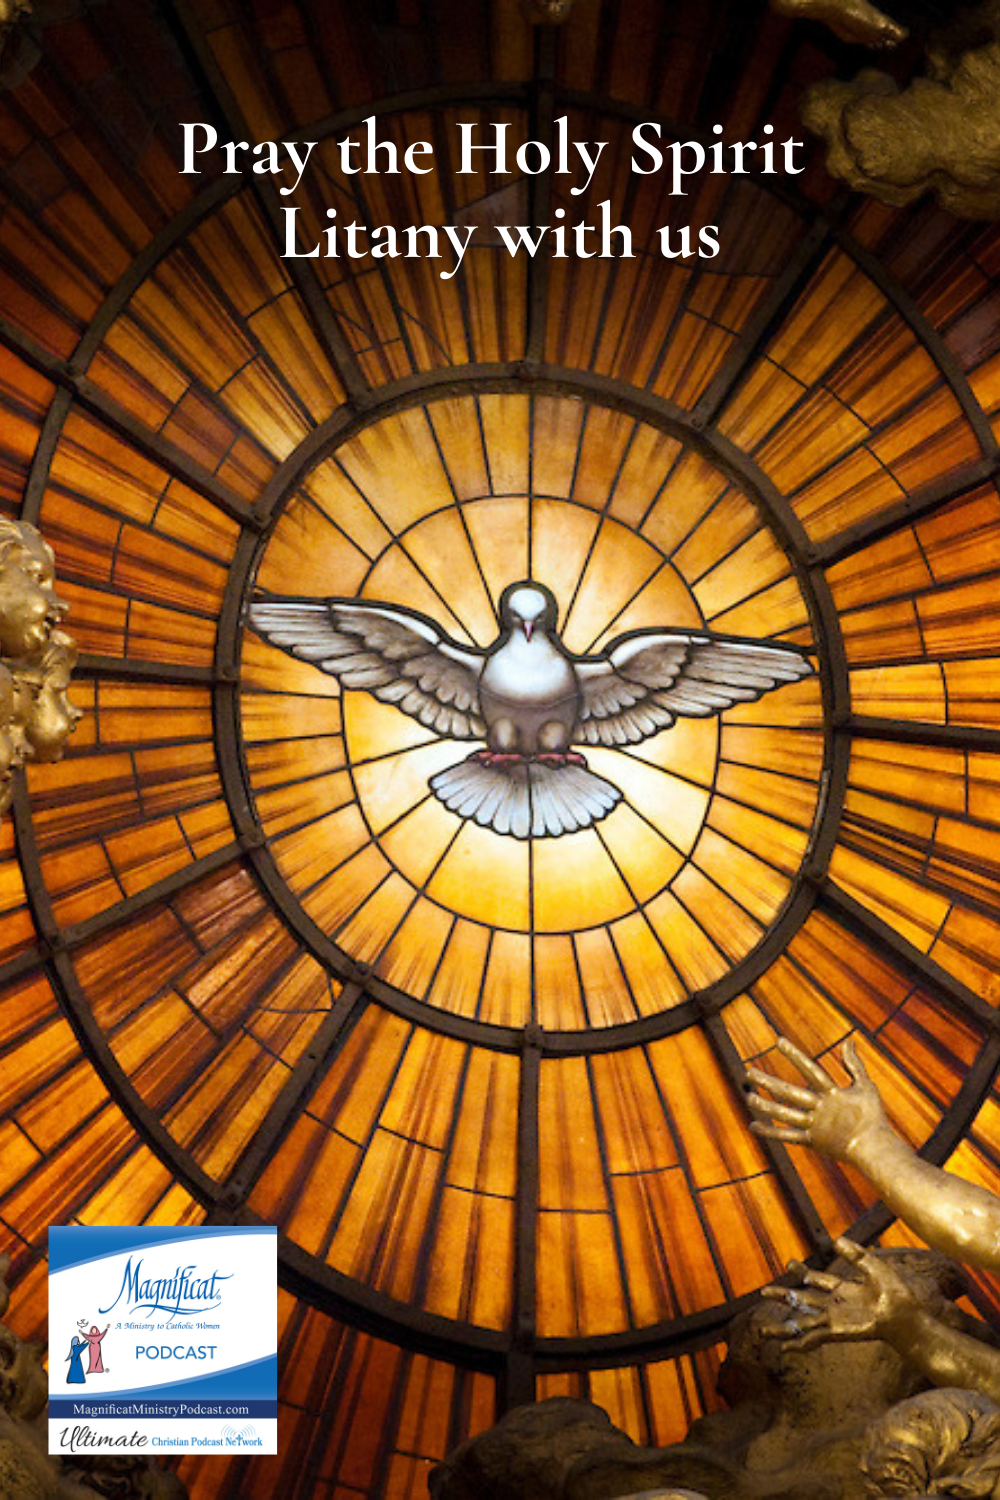 Come, Holy Spirit, fill the hearts of your faithful. And kindle in them the fire of your love.